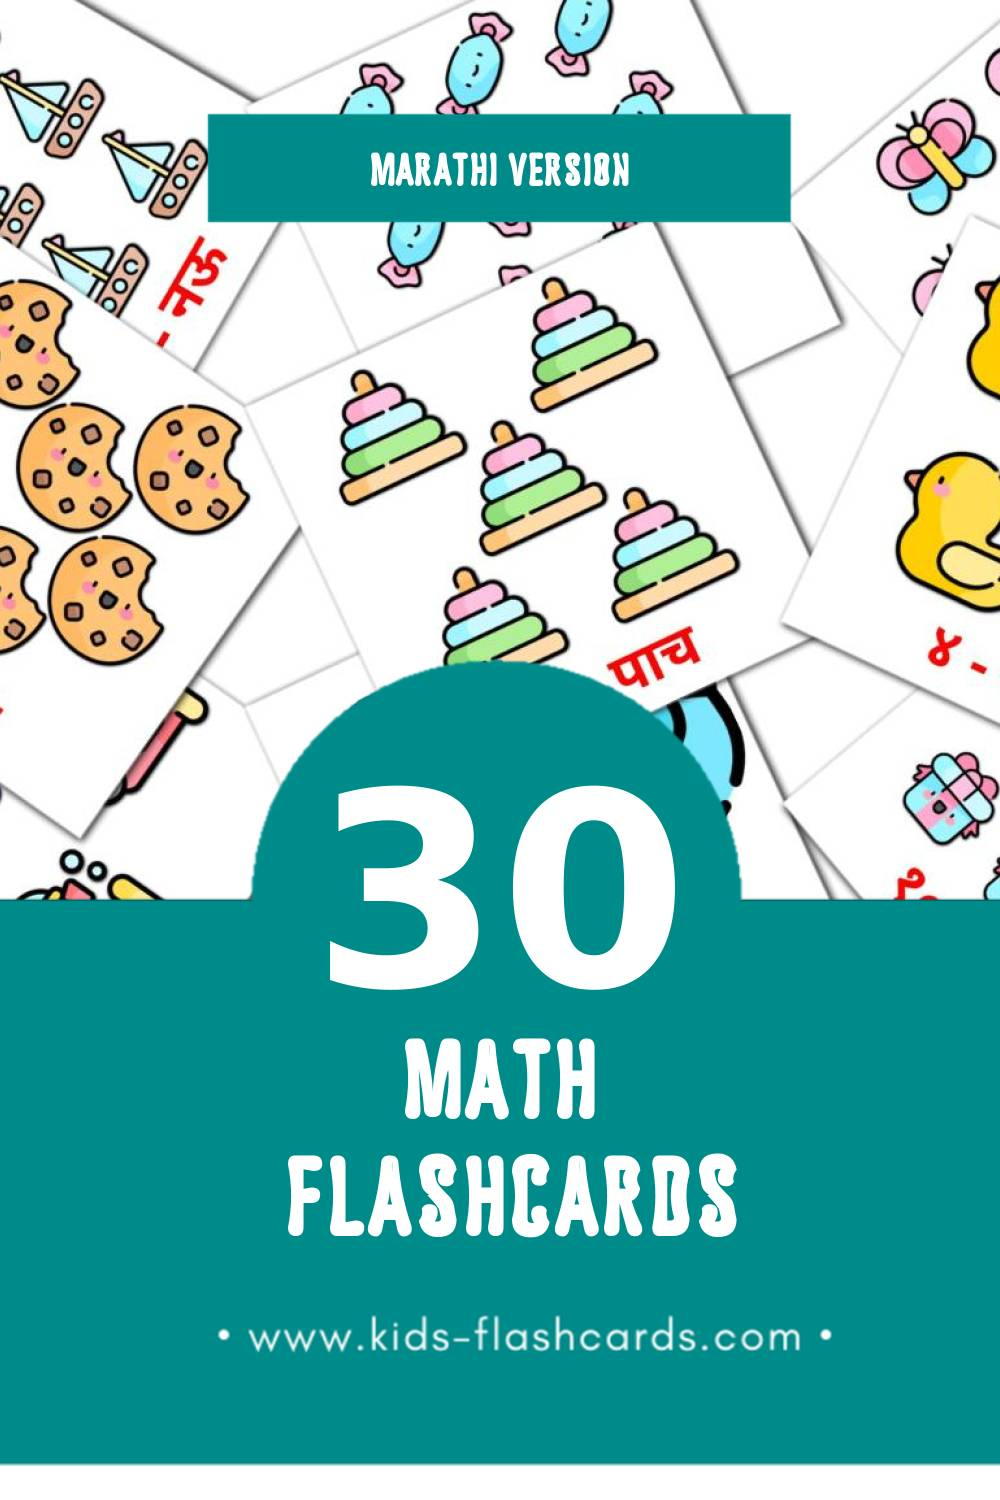 Visual Math Flashcards for Toddlers (20 cards in Marathi)